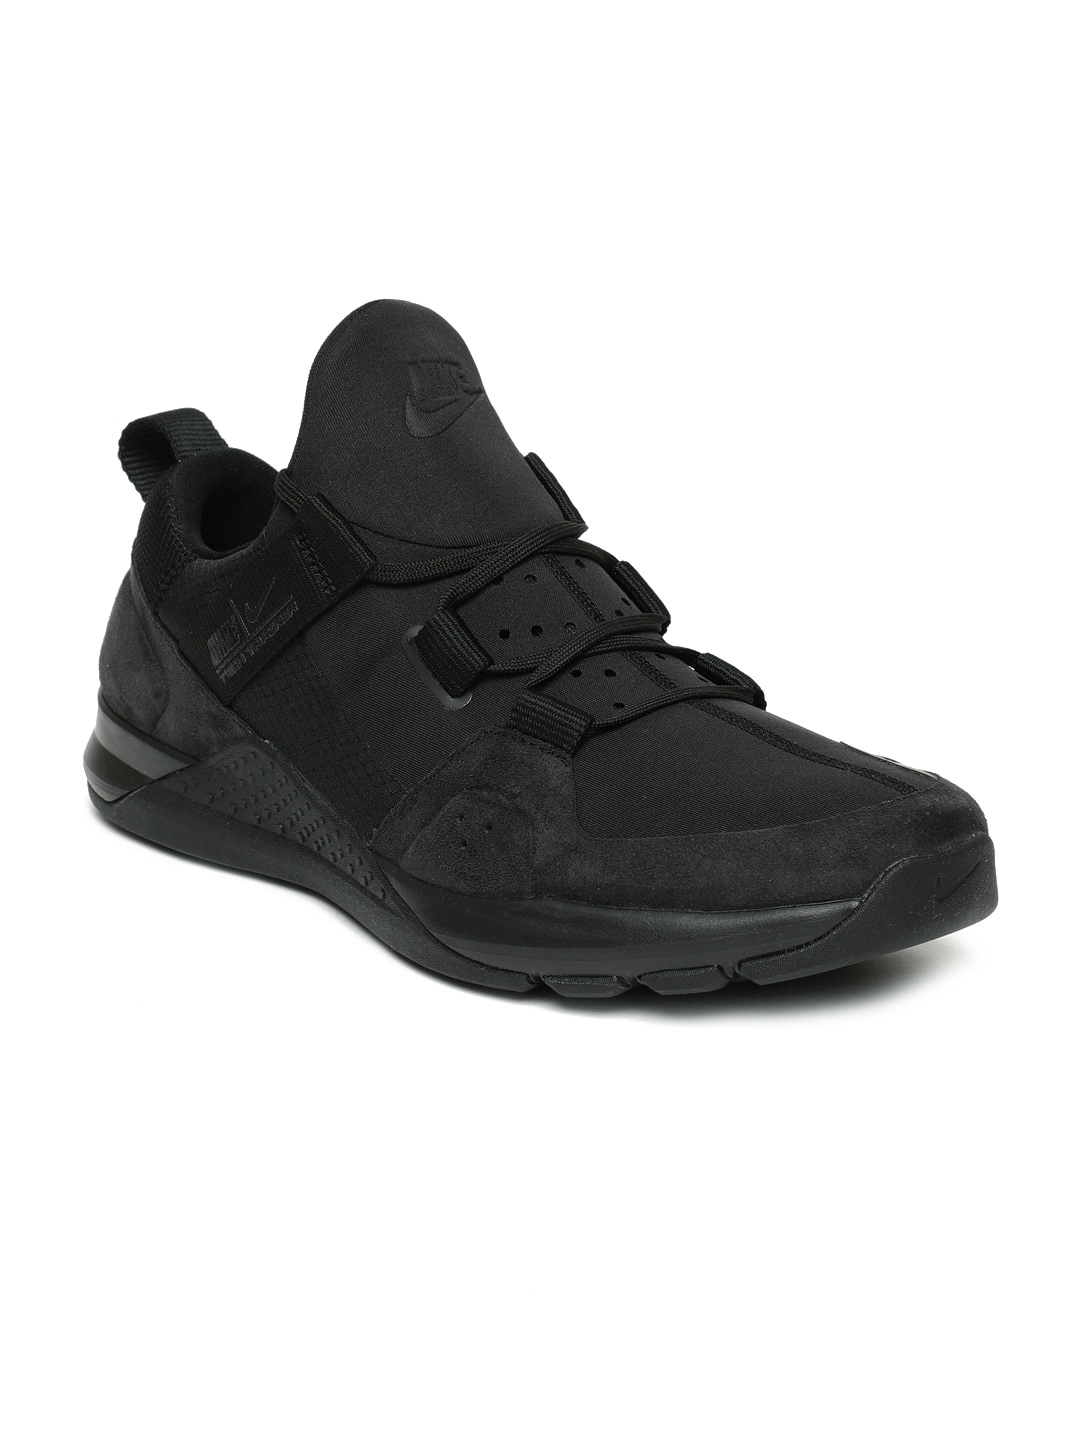 a2c60394df69 Buy Nike Men Black AIR MAX TRAINER 1 Training Shoes - Sports Shoes ...